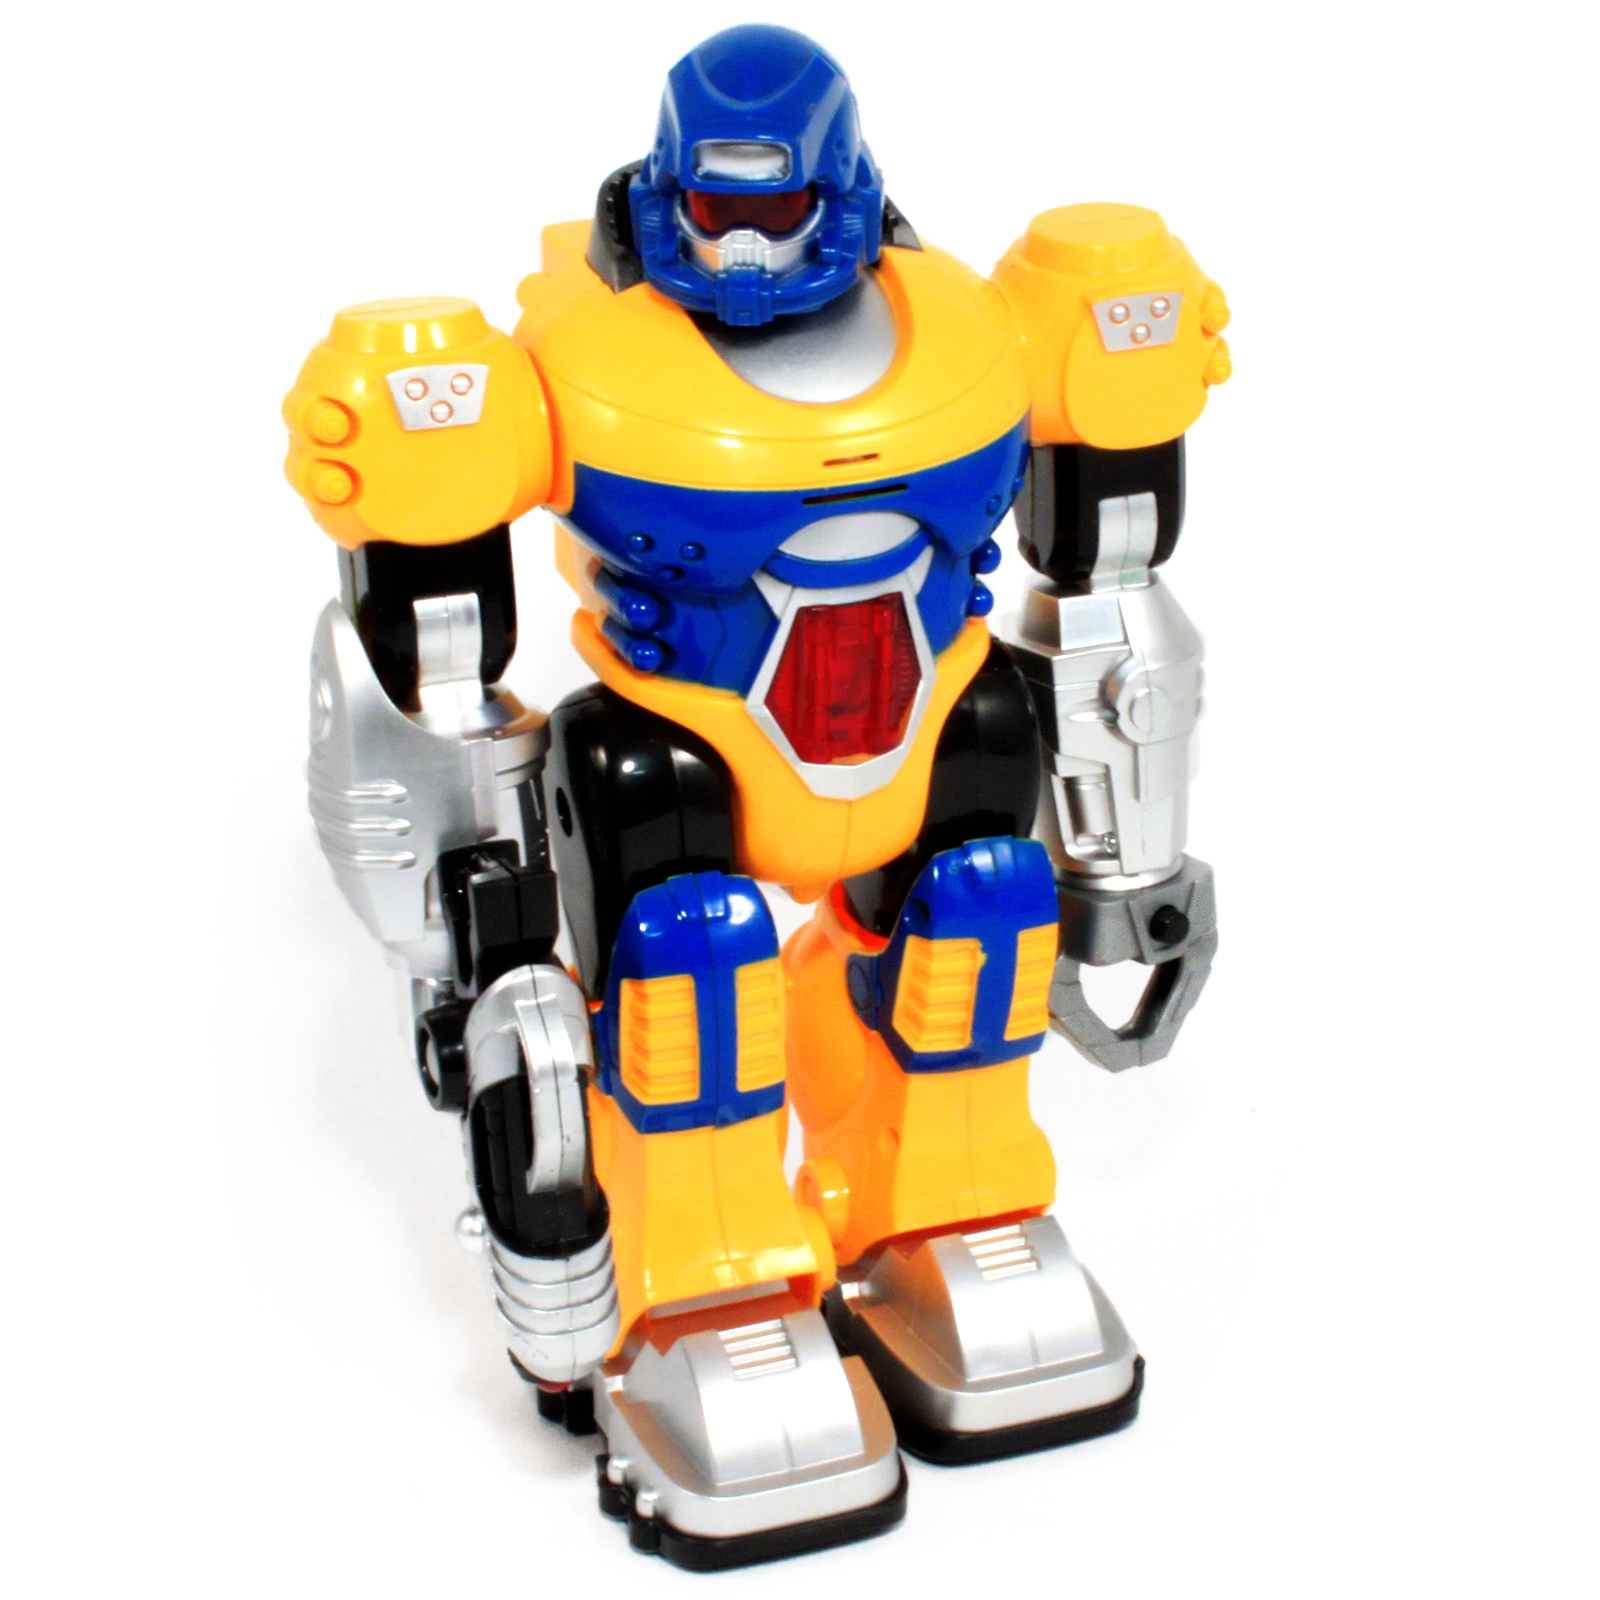 Walking and Shouting Commands the Yellow Power Warrior LED Light Up Super Robot Action Figure Boys Toy